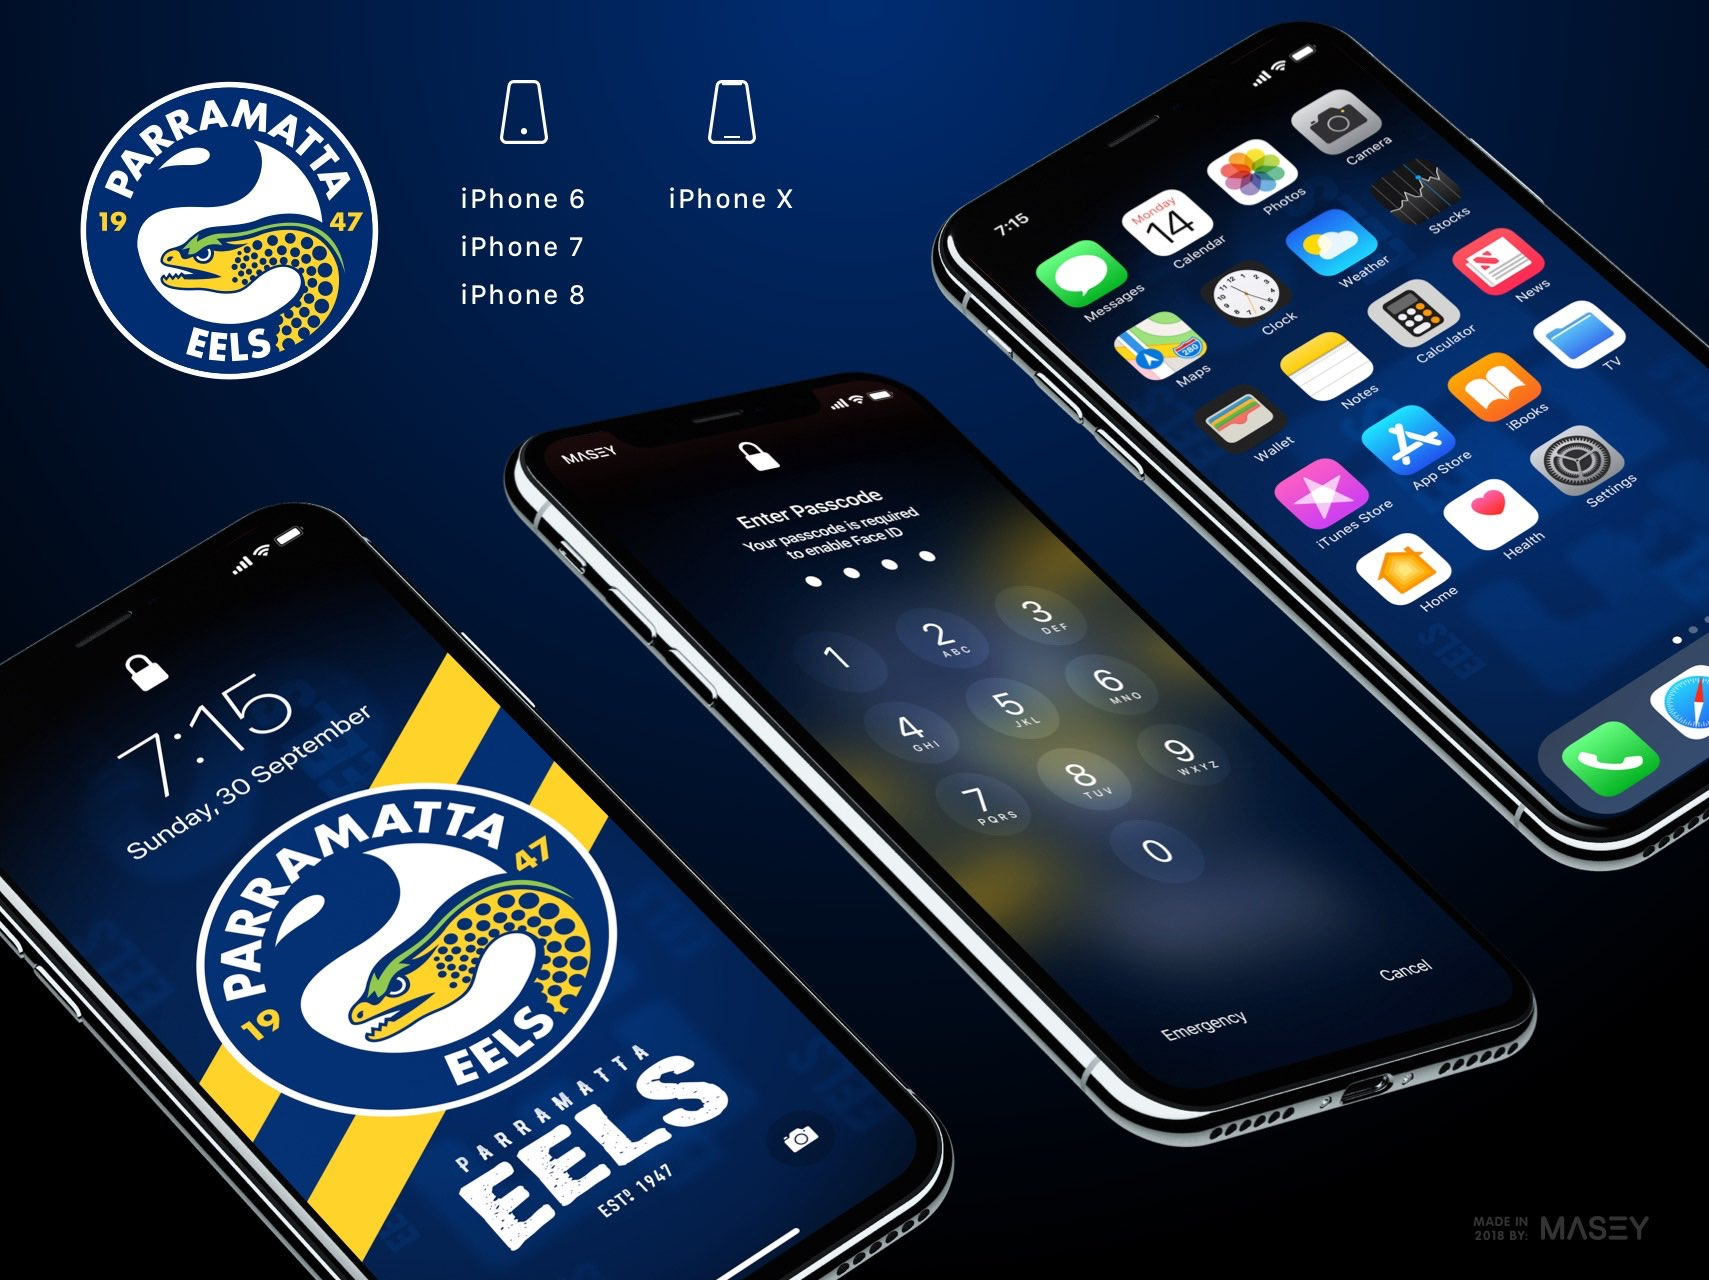 Parramatta Eels iPhone Wallpaper